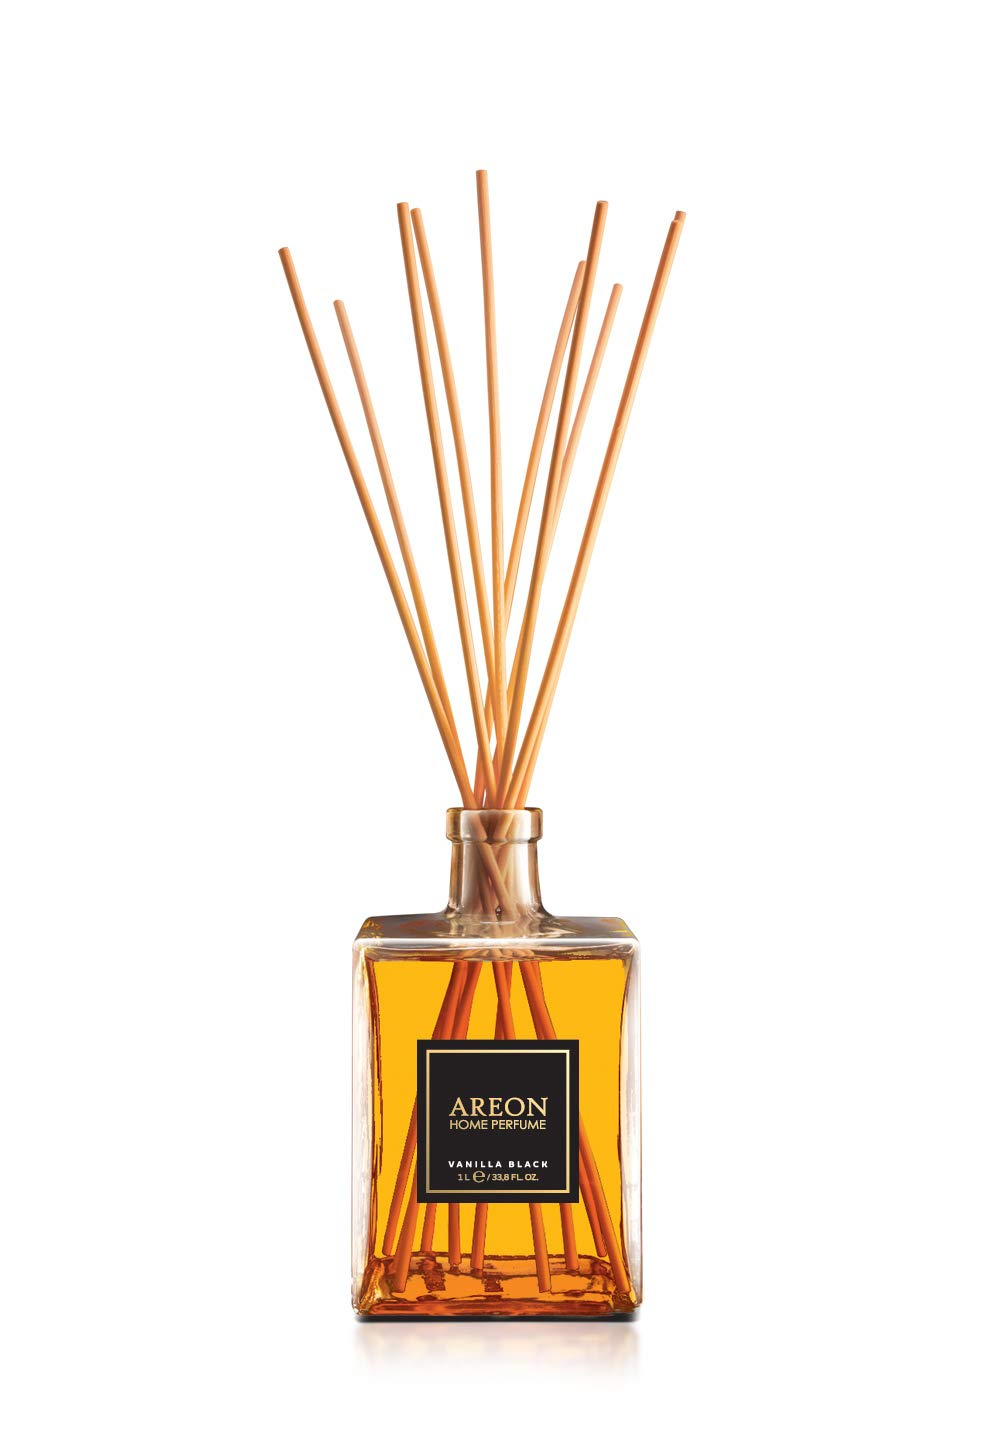 Areon Home Perfume Sticks - 1 Liter (34 OZ) Eau D' ETE by Areon (Image #5)